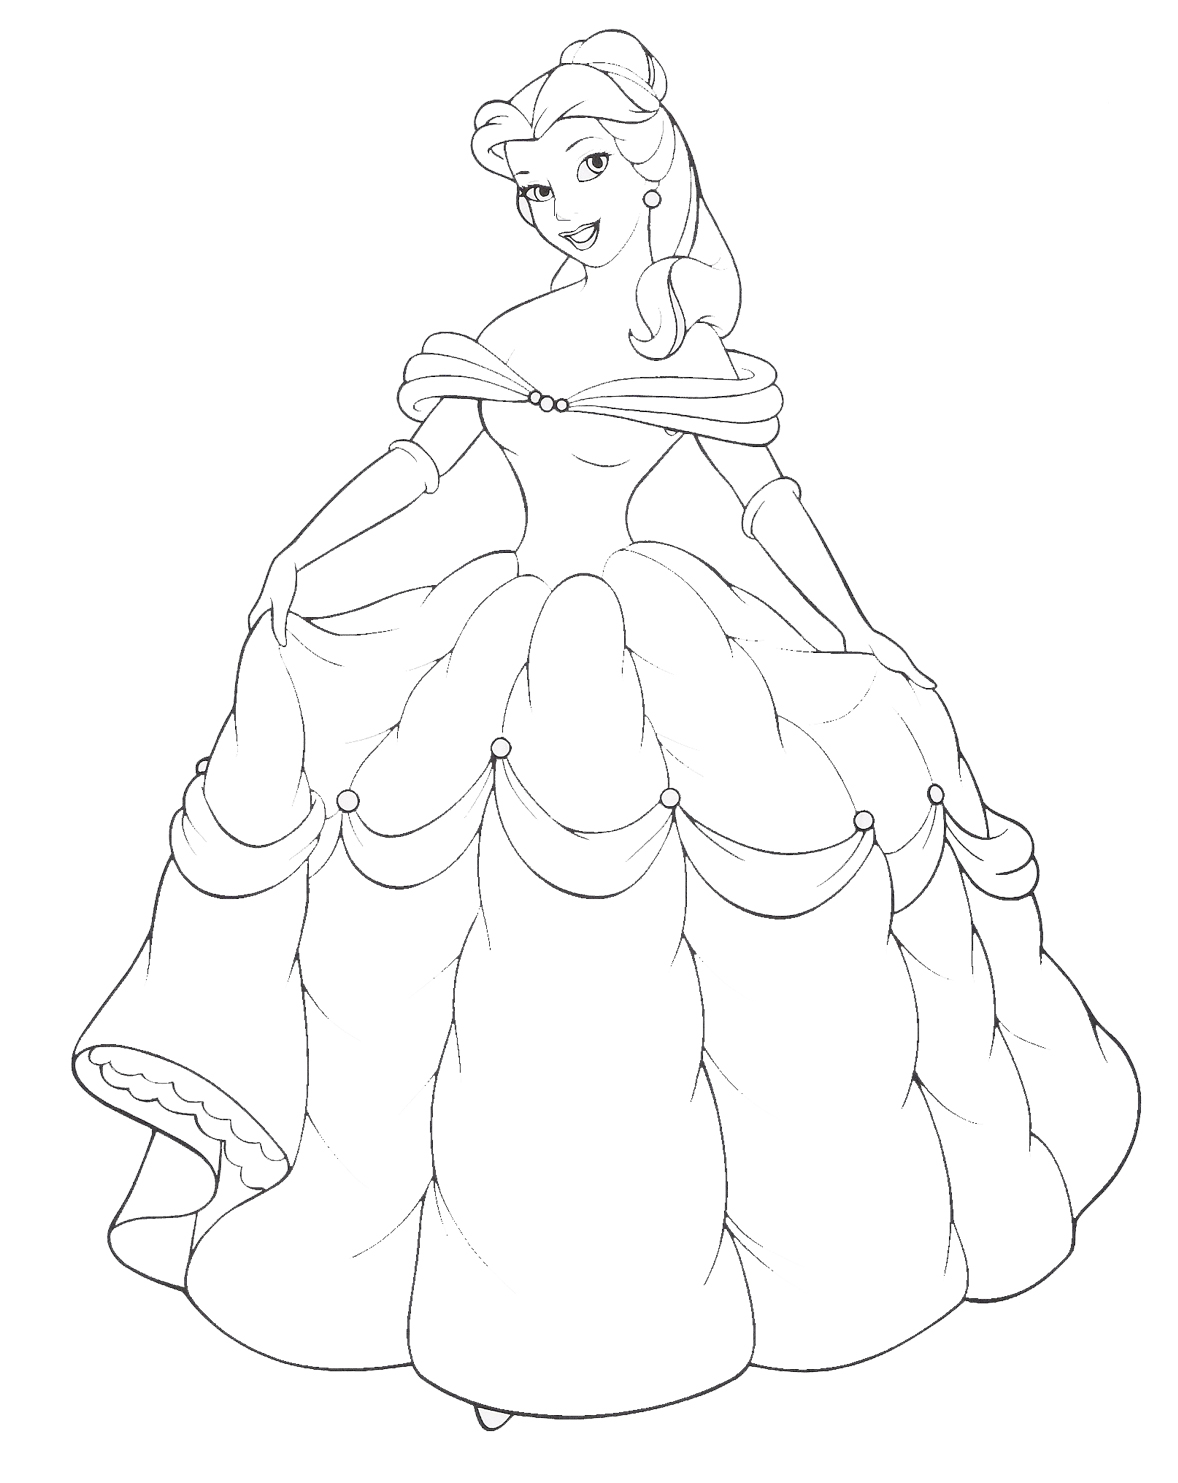 Disney Princess Belle And Her Gown Coloring Sheet Disney Princess Coloring Pages For Free Coloring Sheets